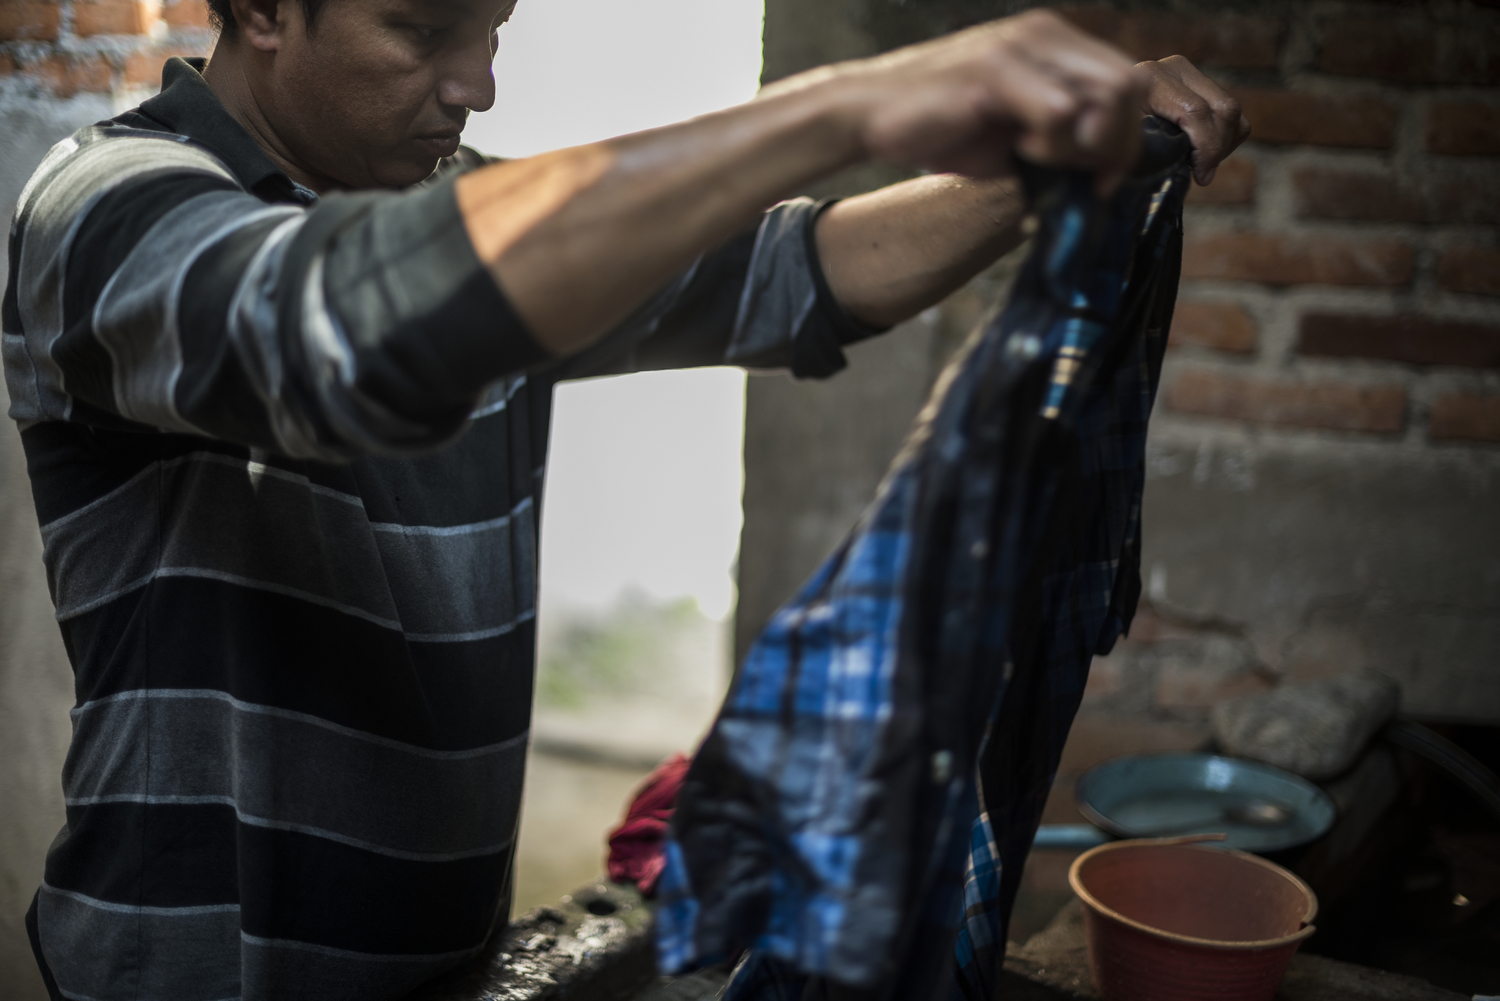 One of the homes where Danilo stays is owned by a Central American man who has lived in Tapachula for years. Danilo stays there for free but washes clothes during the day to earn his place. The house is one room and Danilo sleeps on the floor with two other Central American refugees.